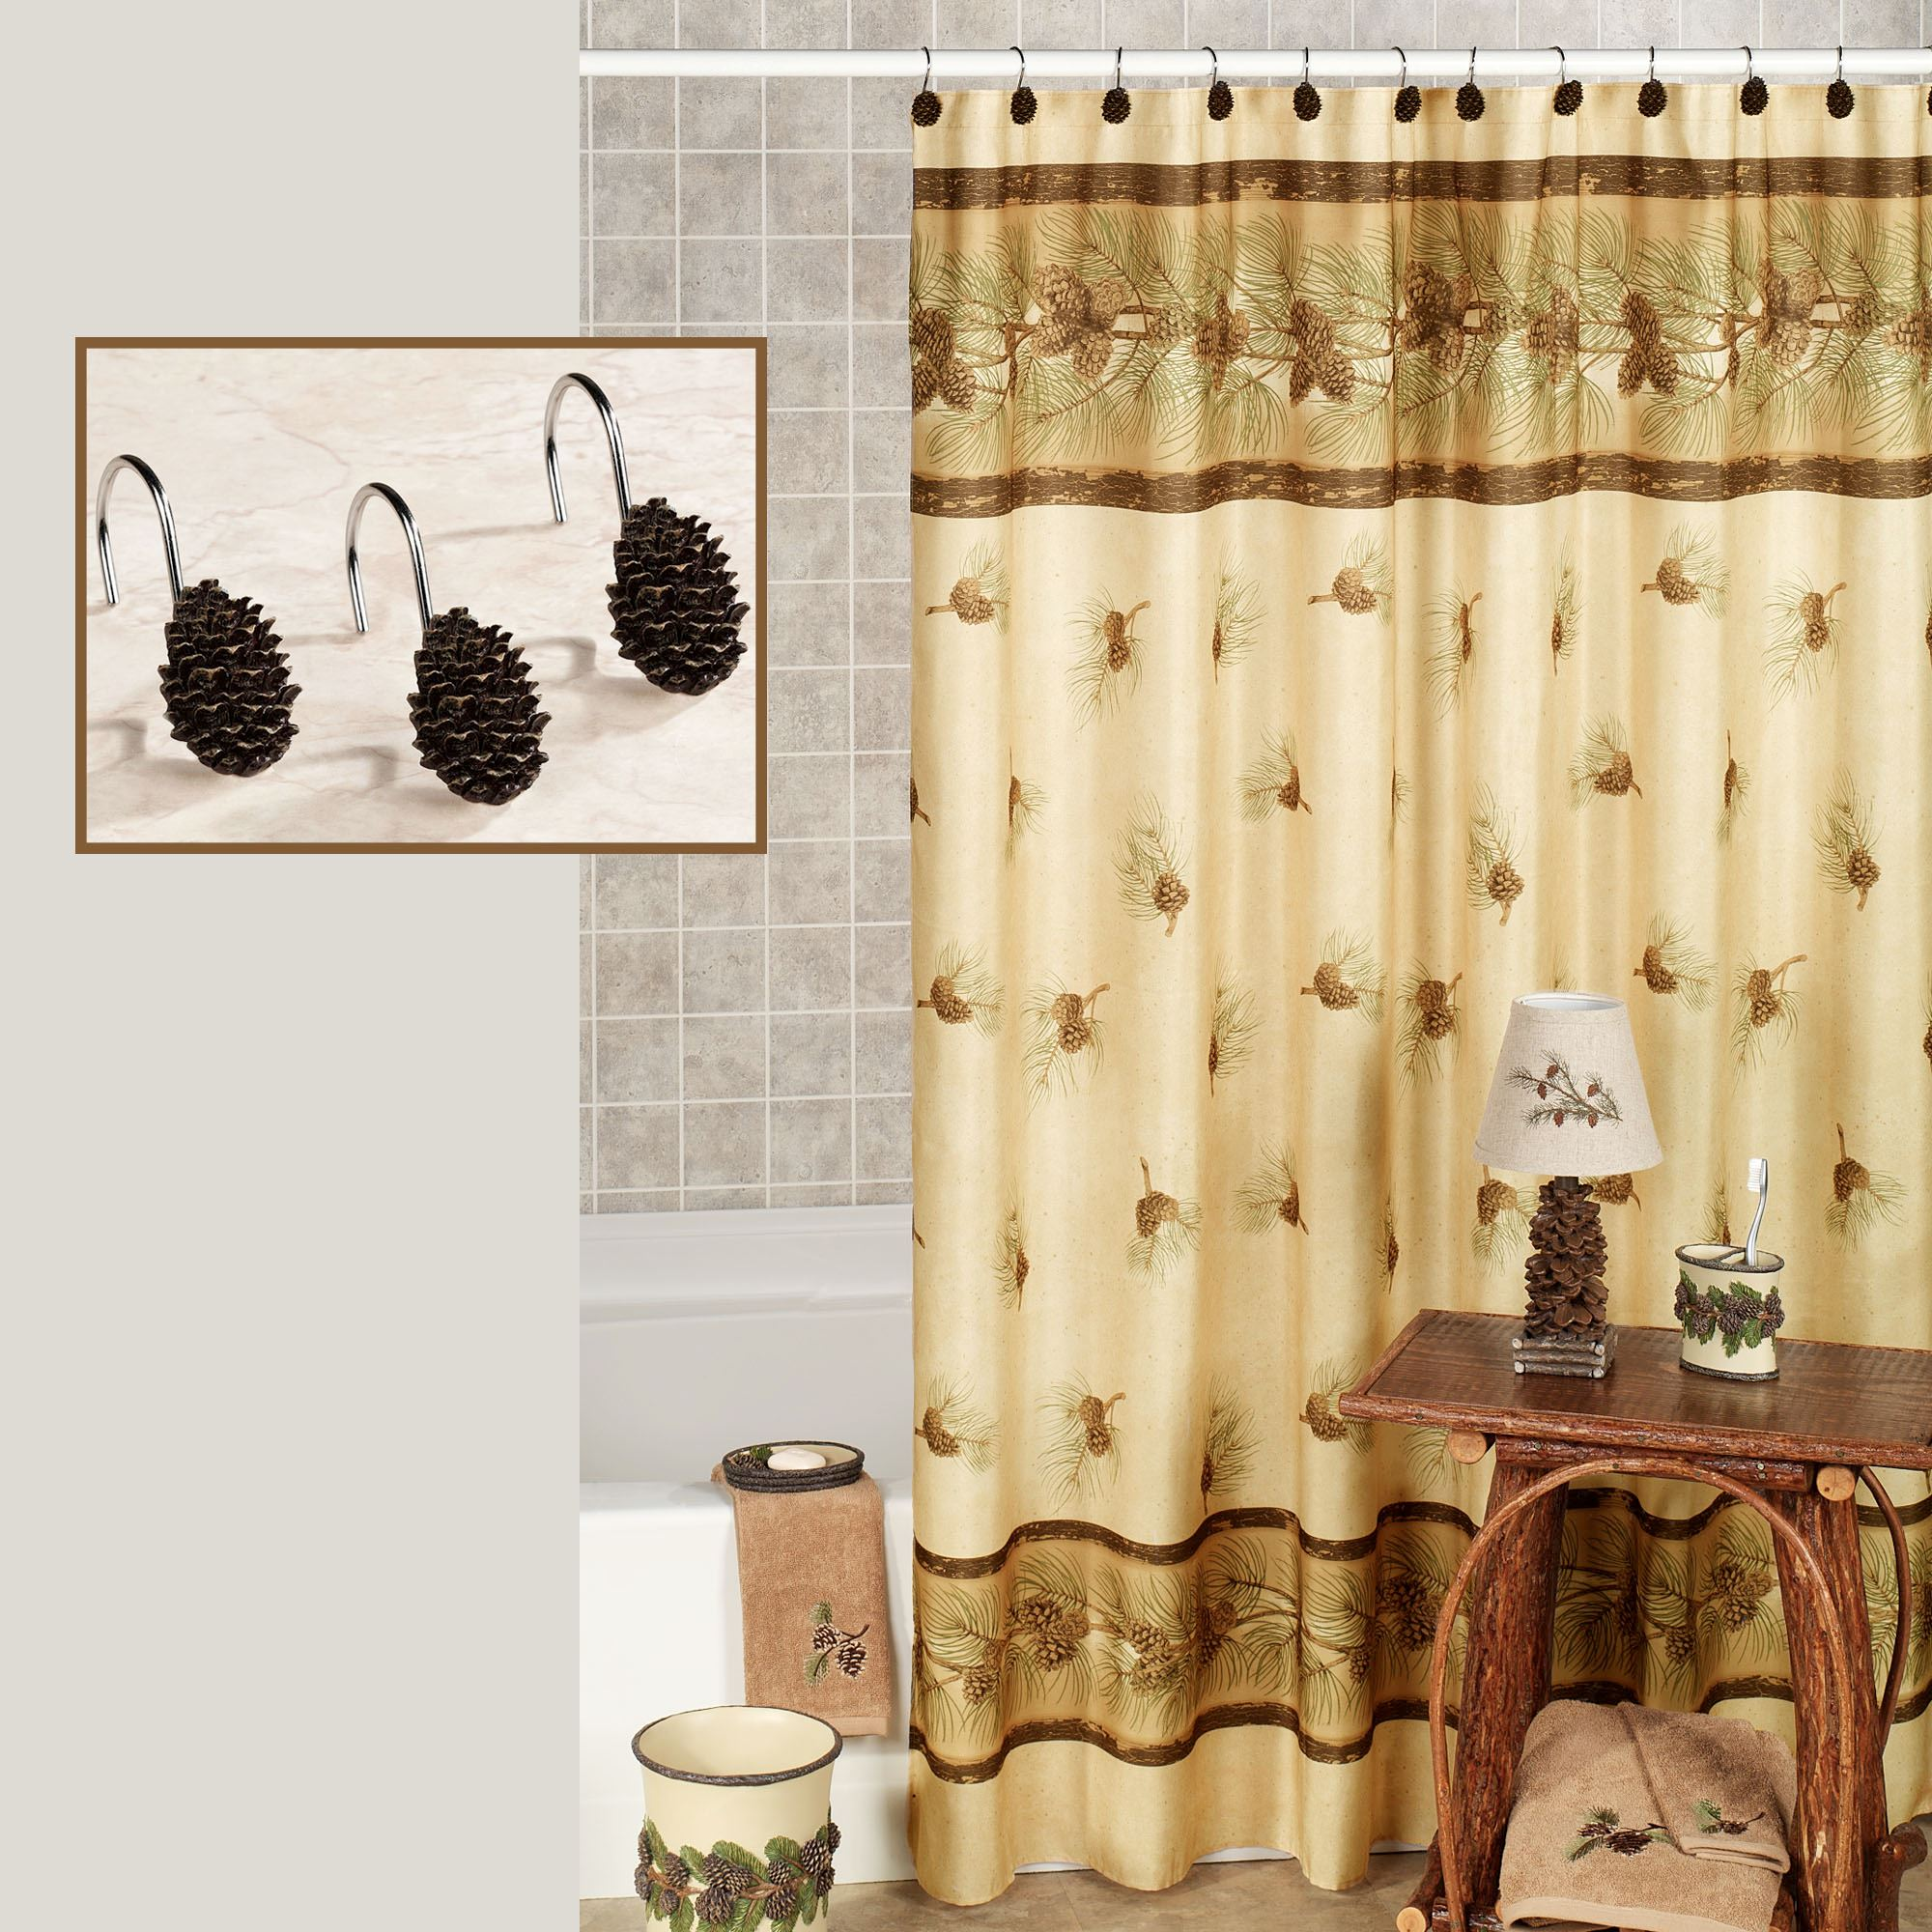 wallpaper hd rustic bathroom shower curtains for tile pc lodge bath decor touch of class